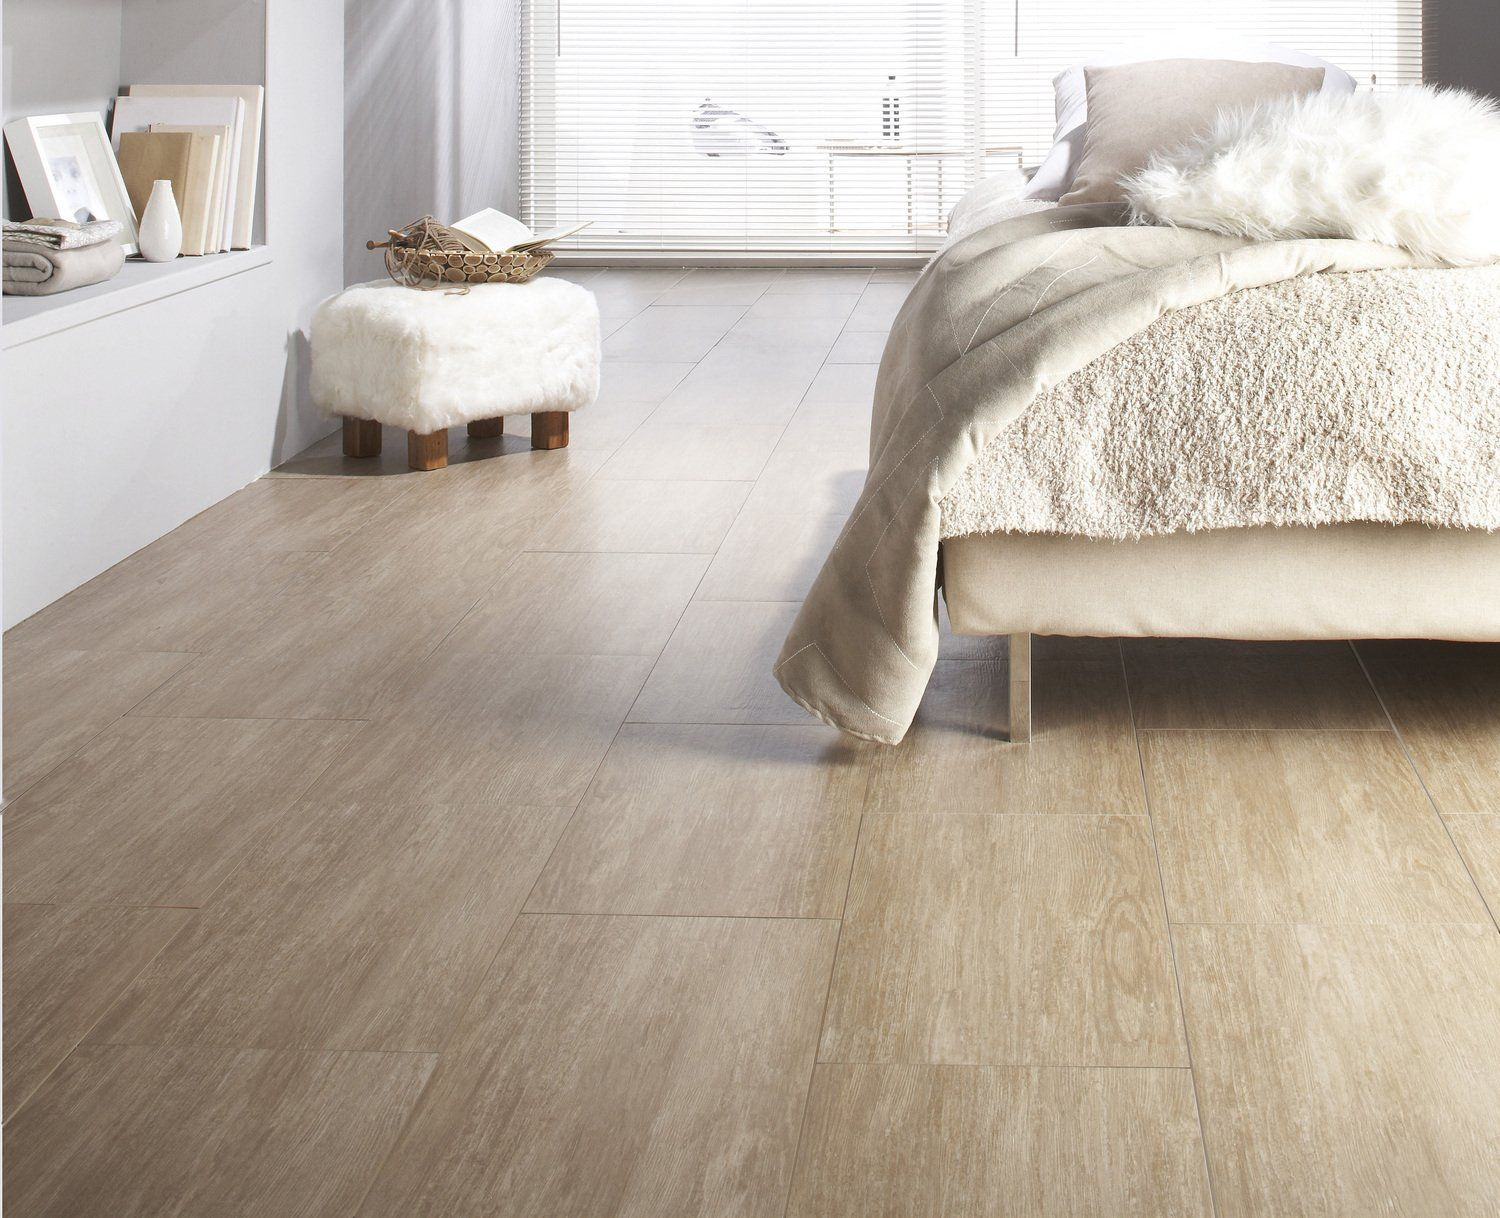 Carrelage Imitation Parquet Chambre Pin By Guylene Laurence On Bricolage Carrelage Aspect Bois